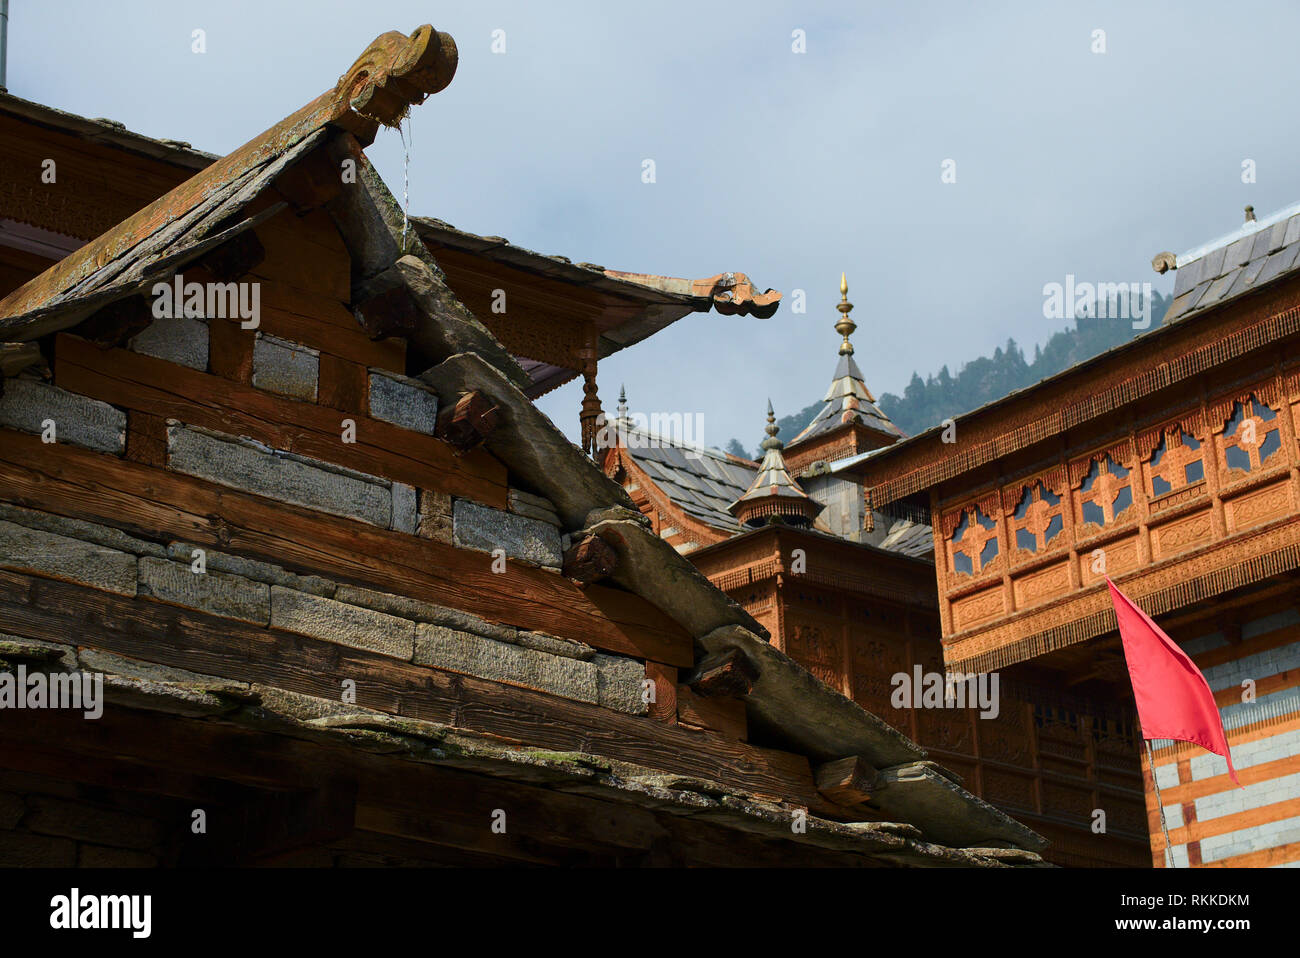 Bhimakali Temple, originally known as Bhimadevi Temple, in Sarahan, Himachal Pradesh. - Stock Image